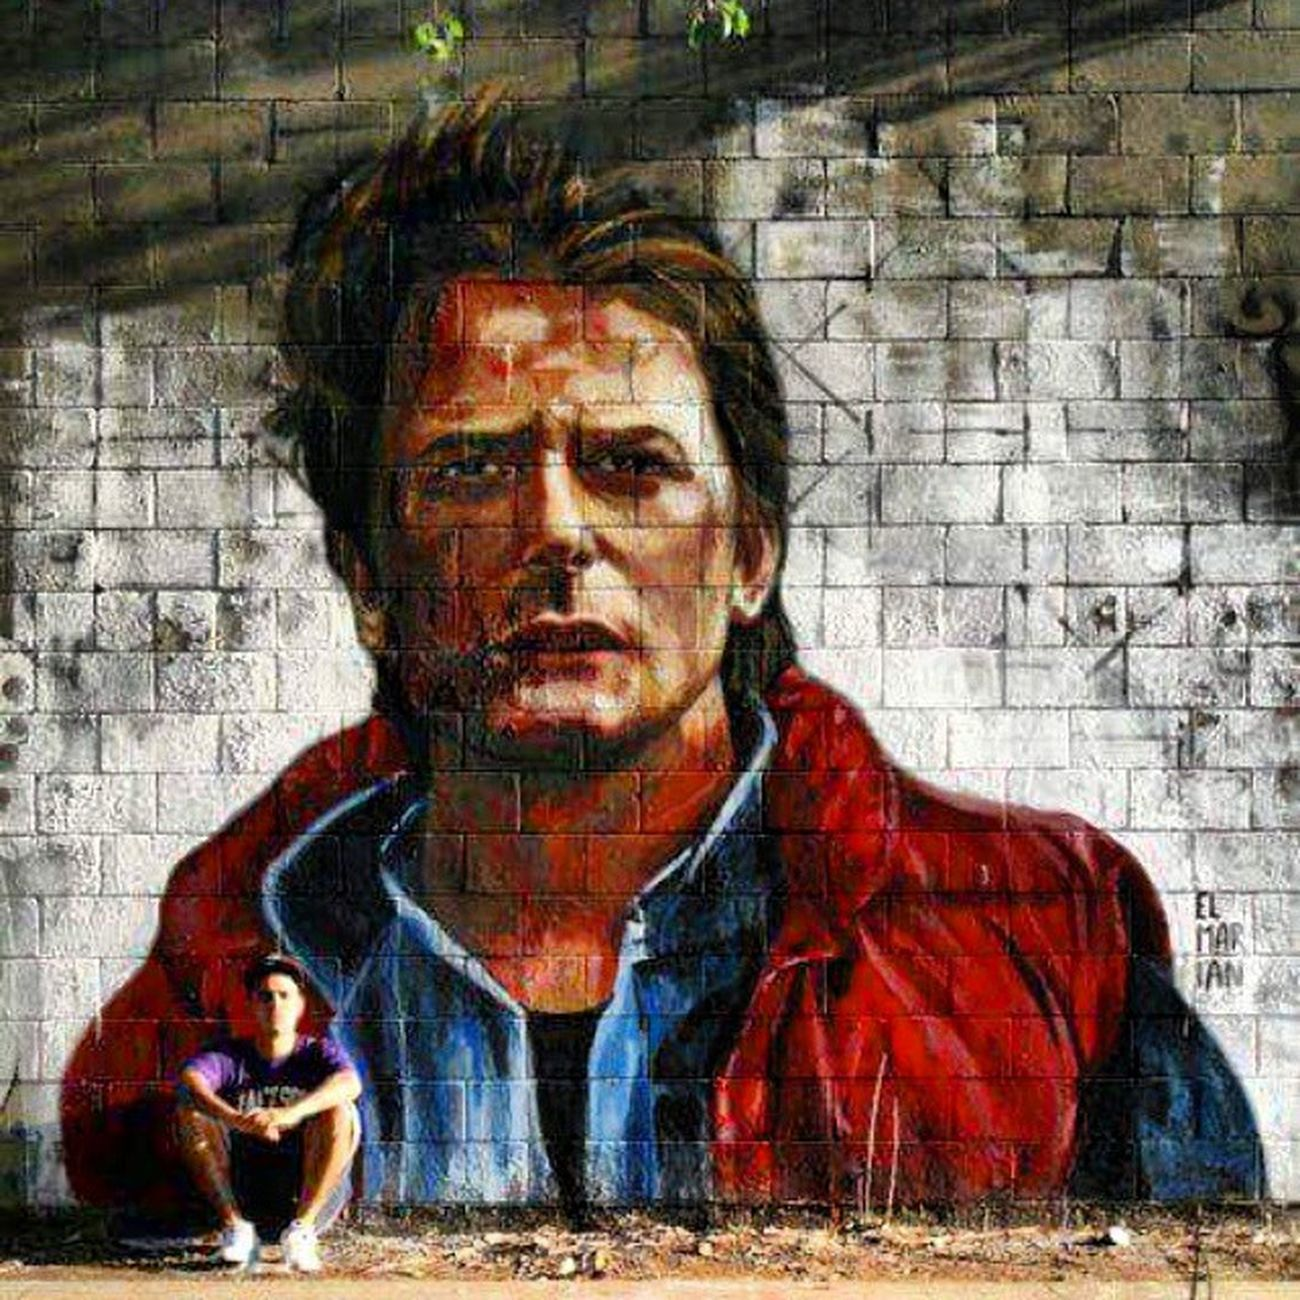 Some Back To Future street art Bttf Martymcfly Backtothefuture Michaeljfox bestofinstagram